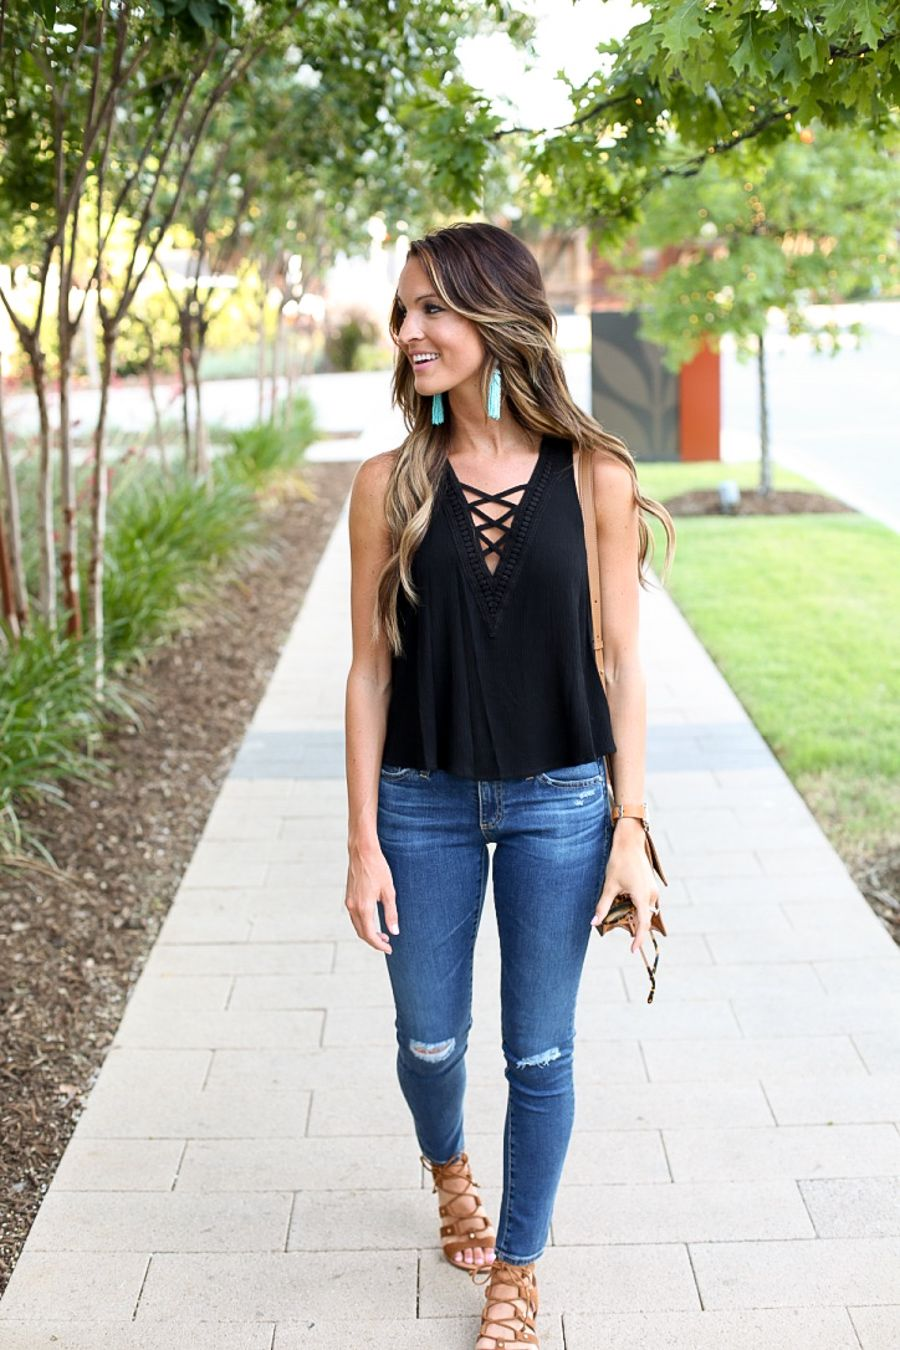 21 Casual Outfit Ideas for Spring and Summer photo